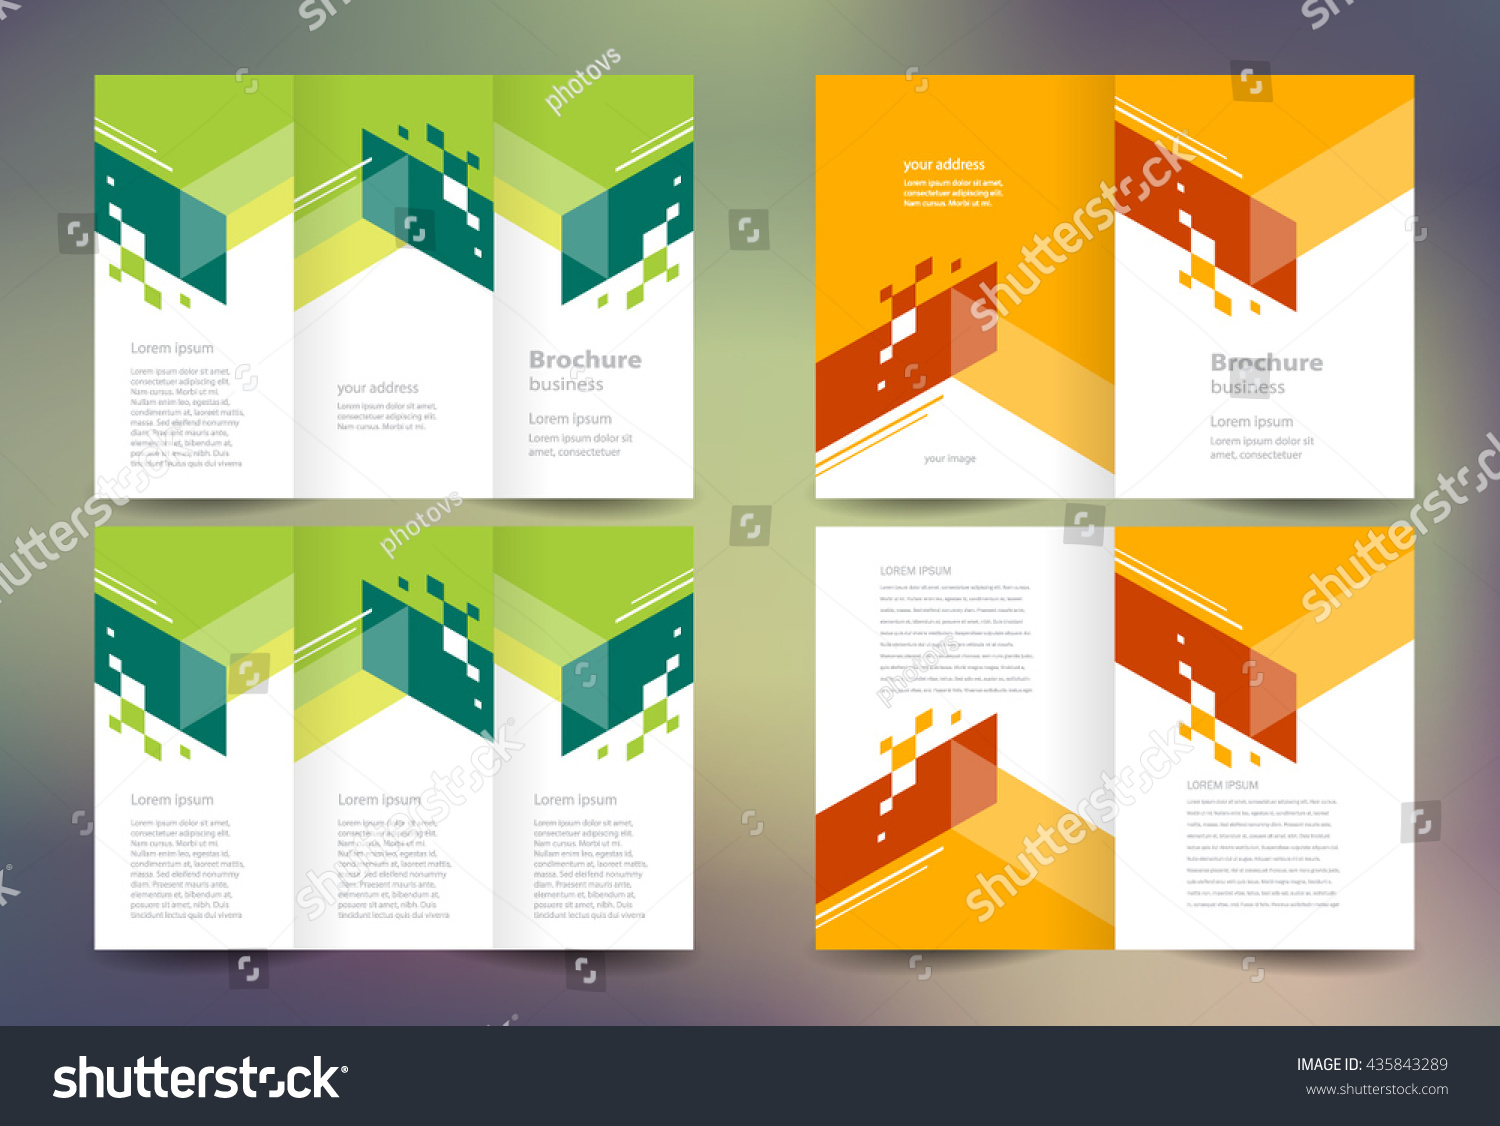 business tri fold brochure templates - business brochure set design template folder stock vector